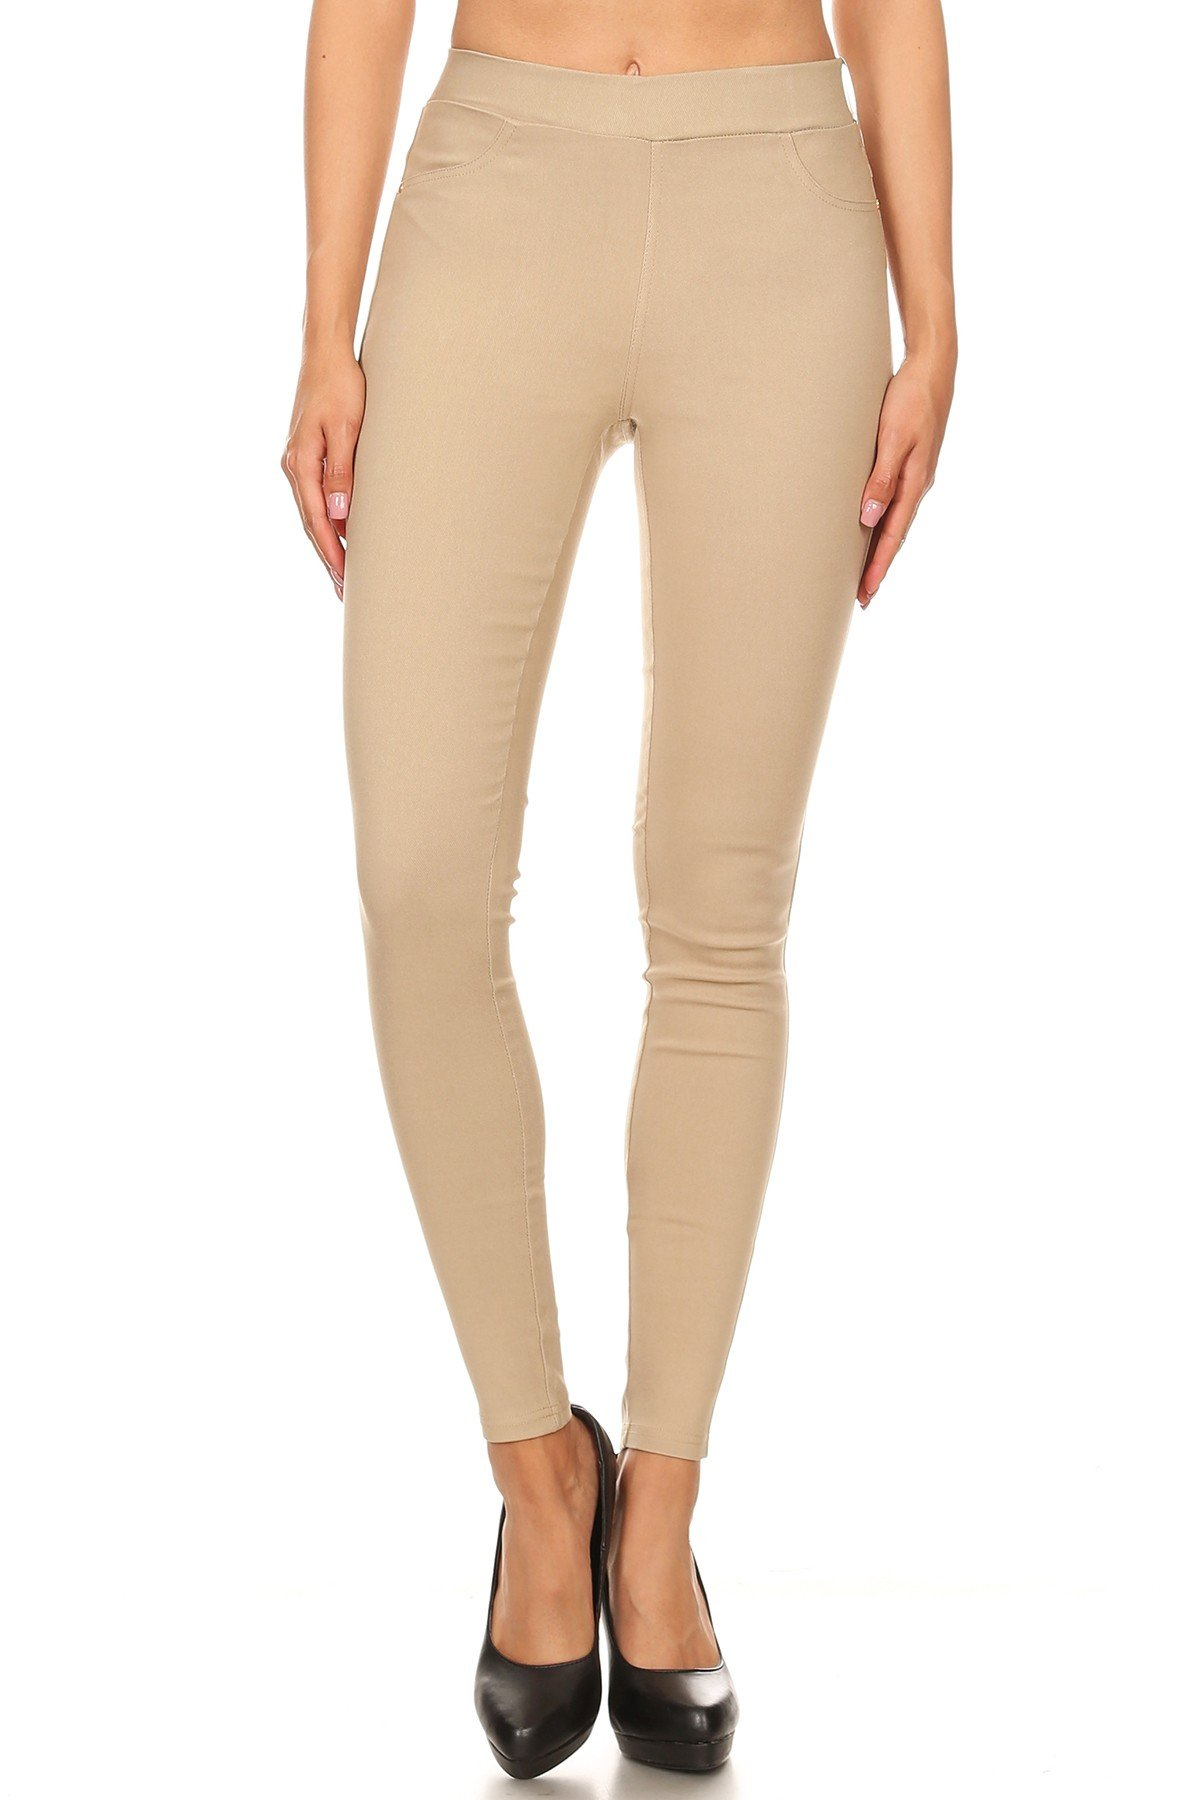 Jvini Women's High Waist Pull-On Skinny Super Stretchy Jeggings & Capris Regular & Plus Size (Medium, Khaki)